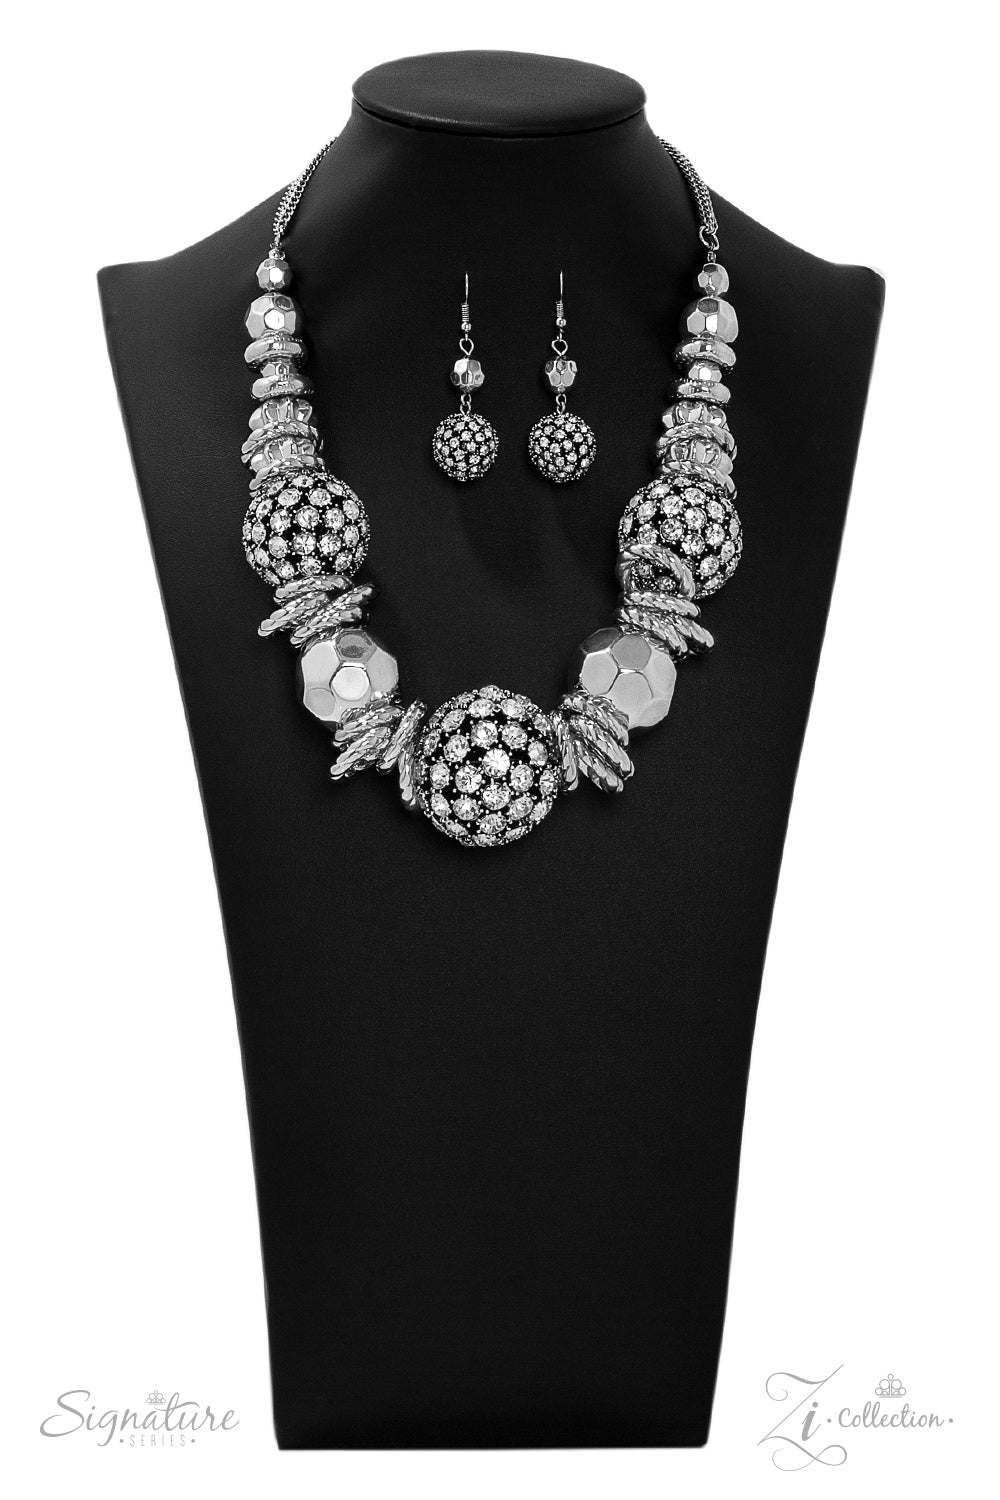 The Barbara - Silver with Rhinestone Encrusted Large Beads - 2019 Zi Collection